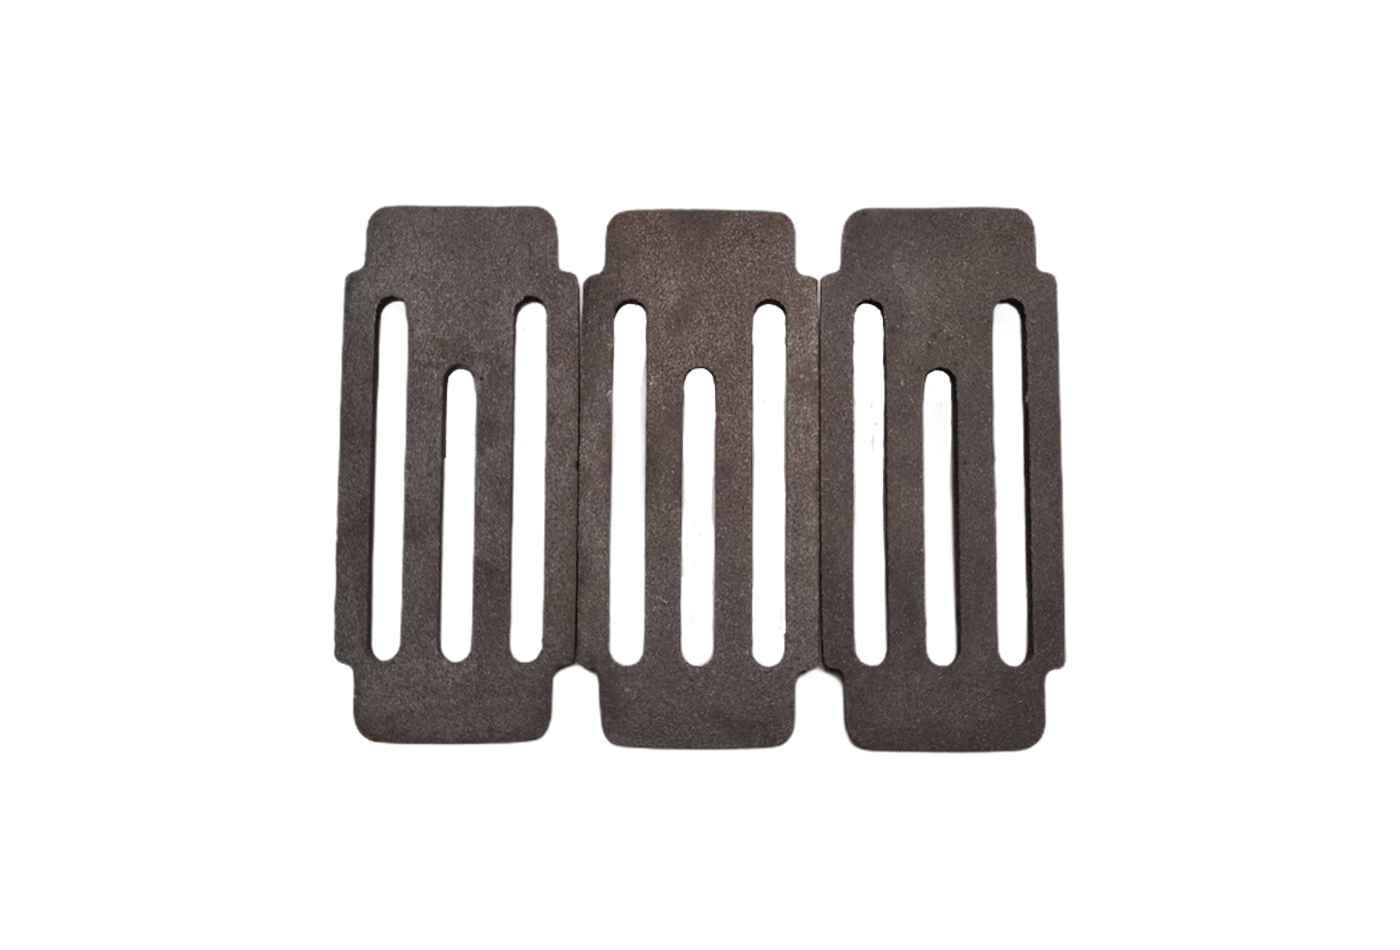 Charnwood C4 Grate Plate Set